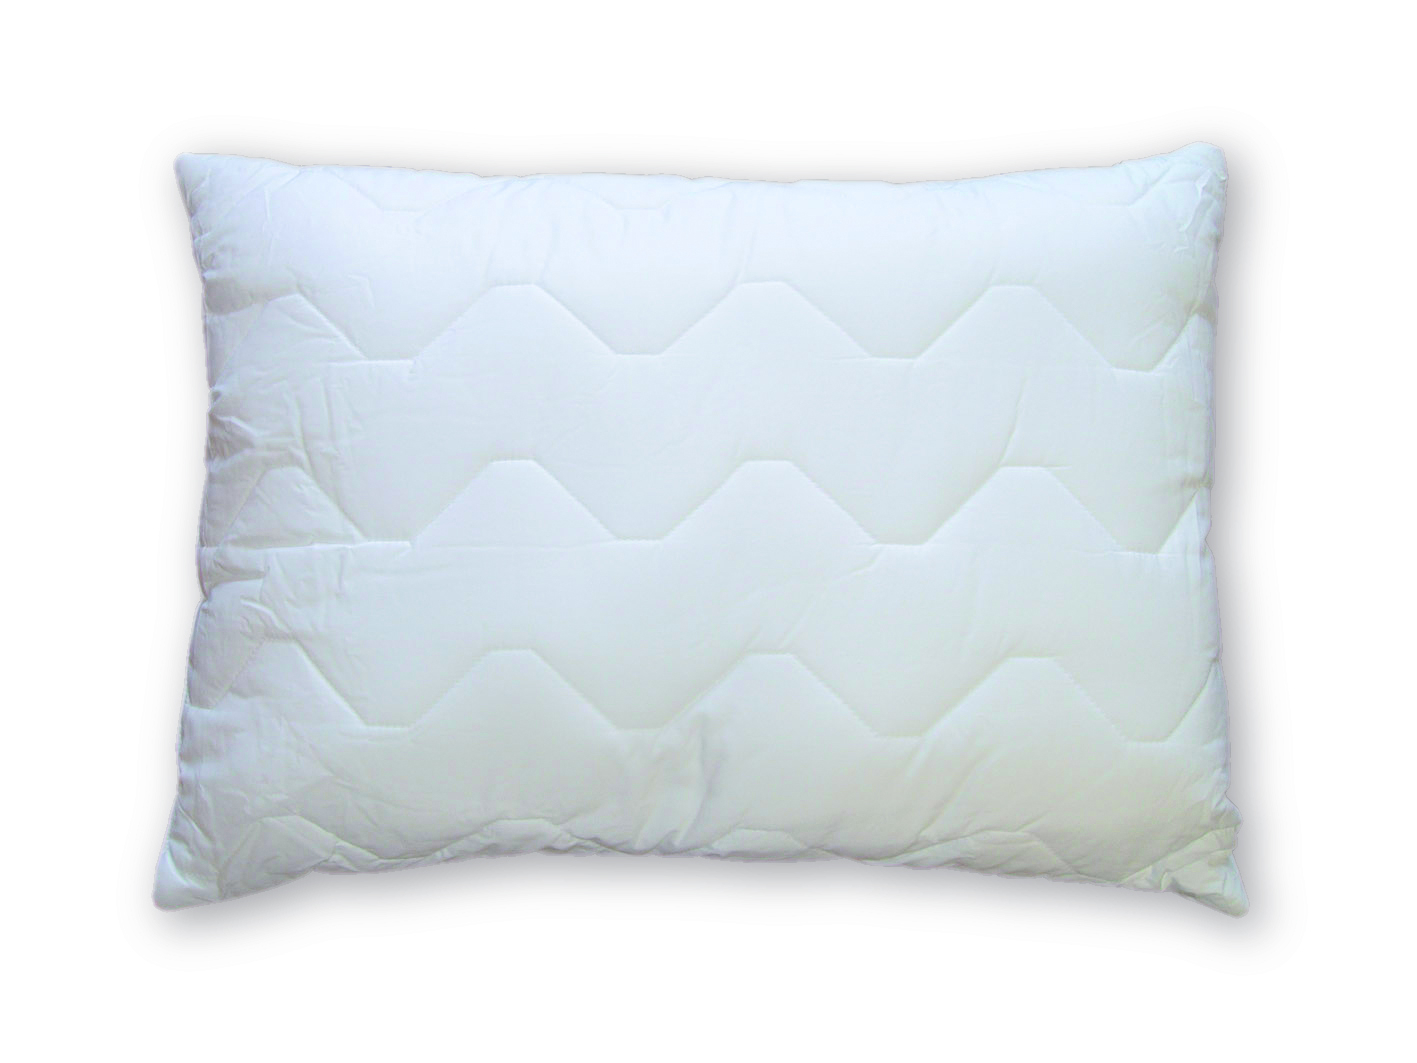 Luxury Washable Fire Retardant Quilted Pillow